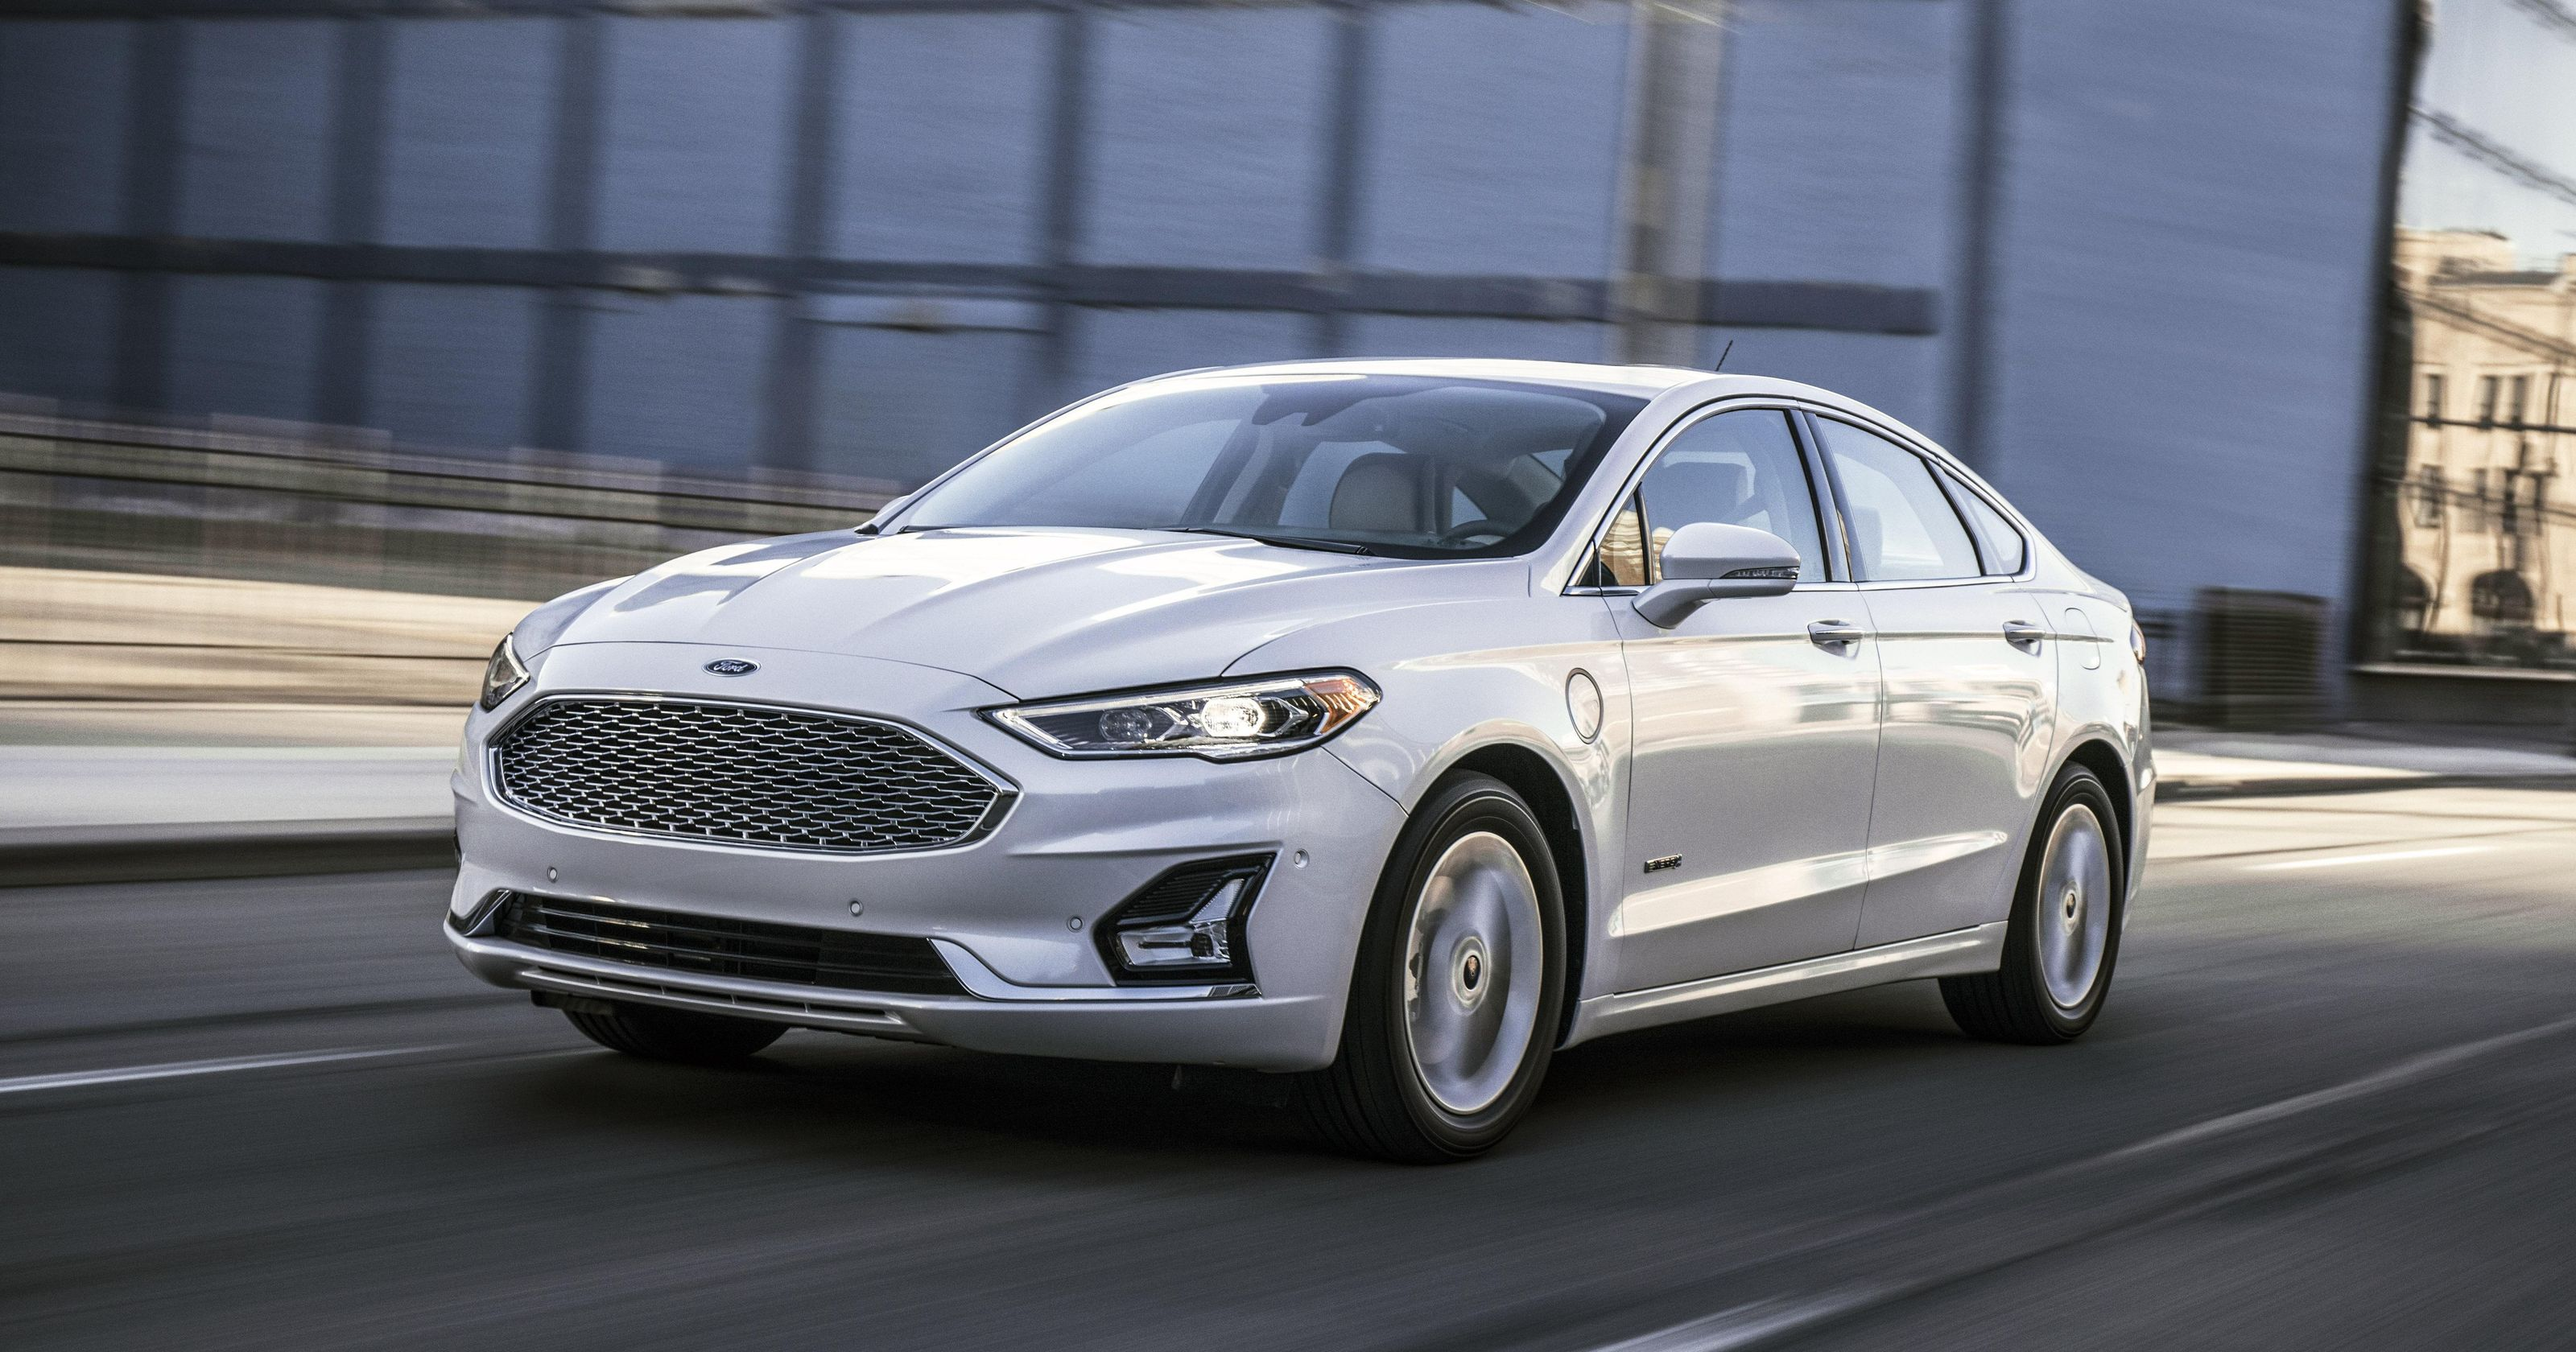 19 A 2020 Ford Fusion Energi Wallpaper